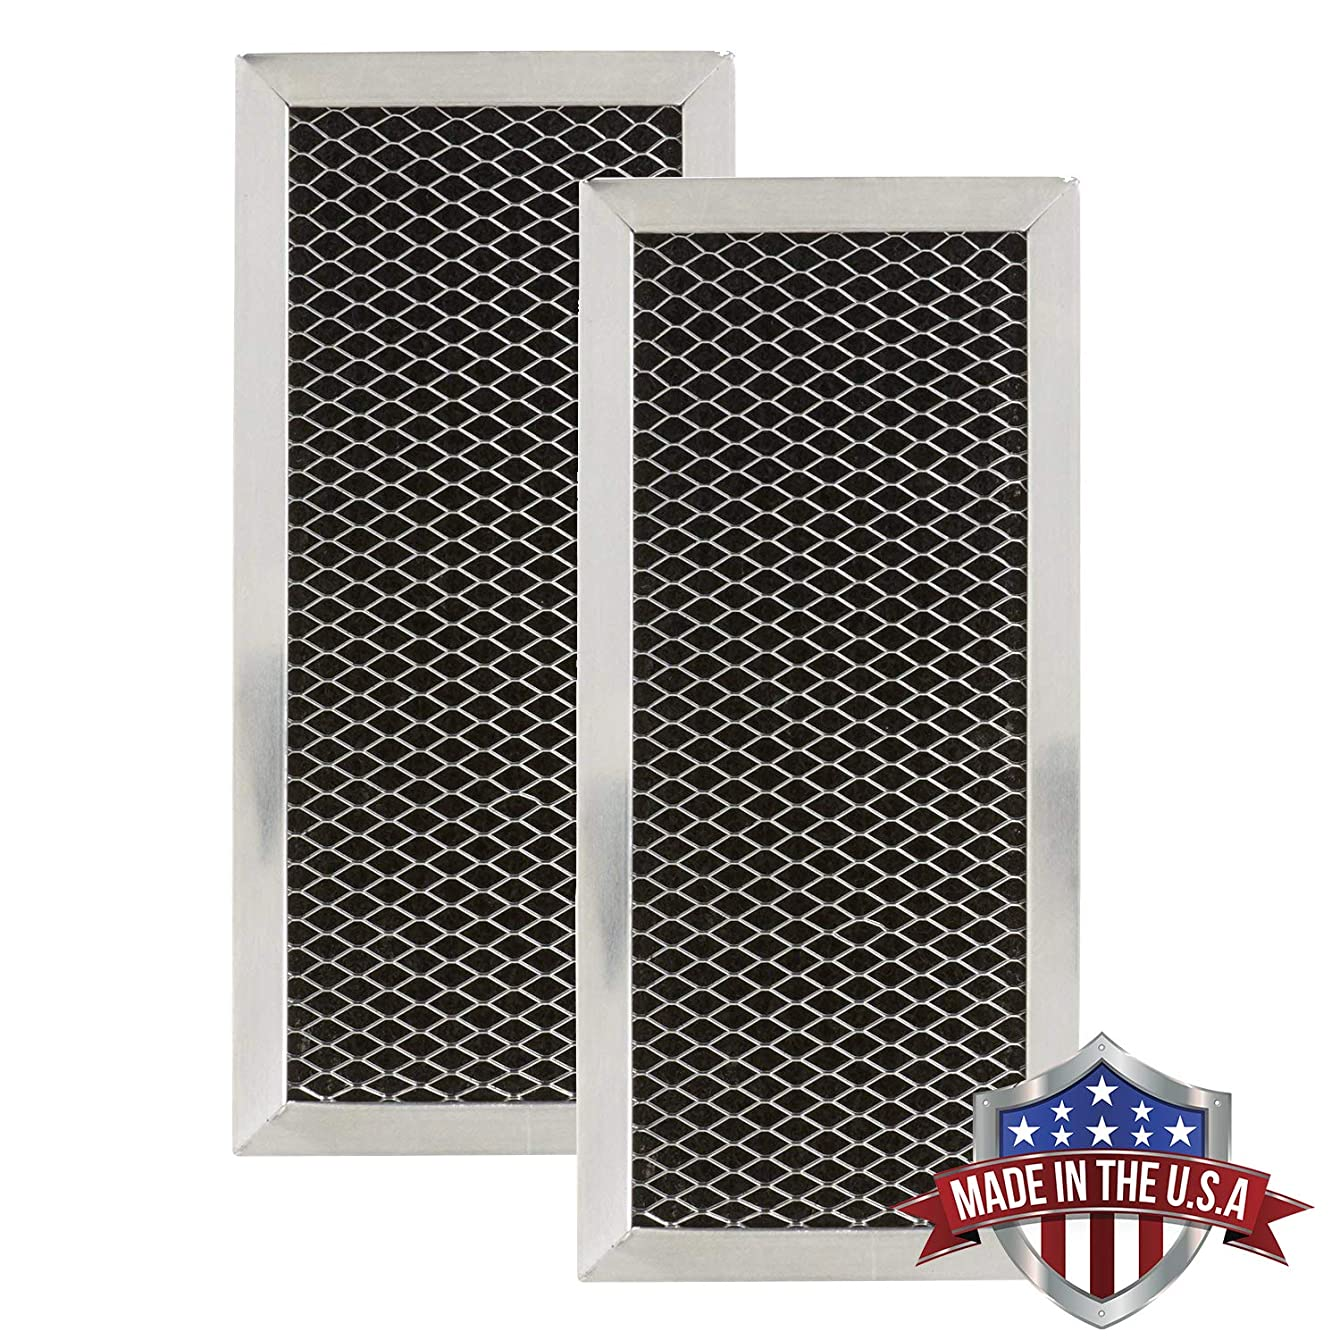 GE JX81H, WB02X10956, WB02X11544, WB2X10956 Microwave Recirculating Charcoal Filter Compatible with GE, LG 5230W1A011A, 5230W1A011C (Made in USA) (2-Pack)